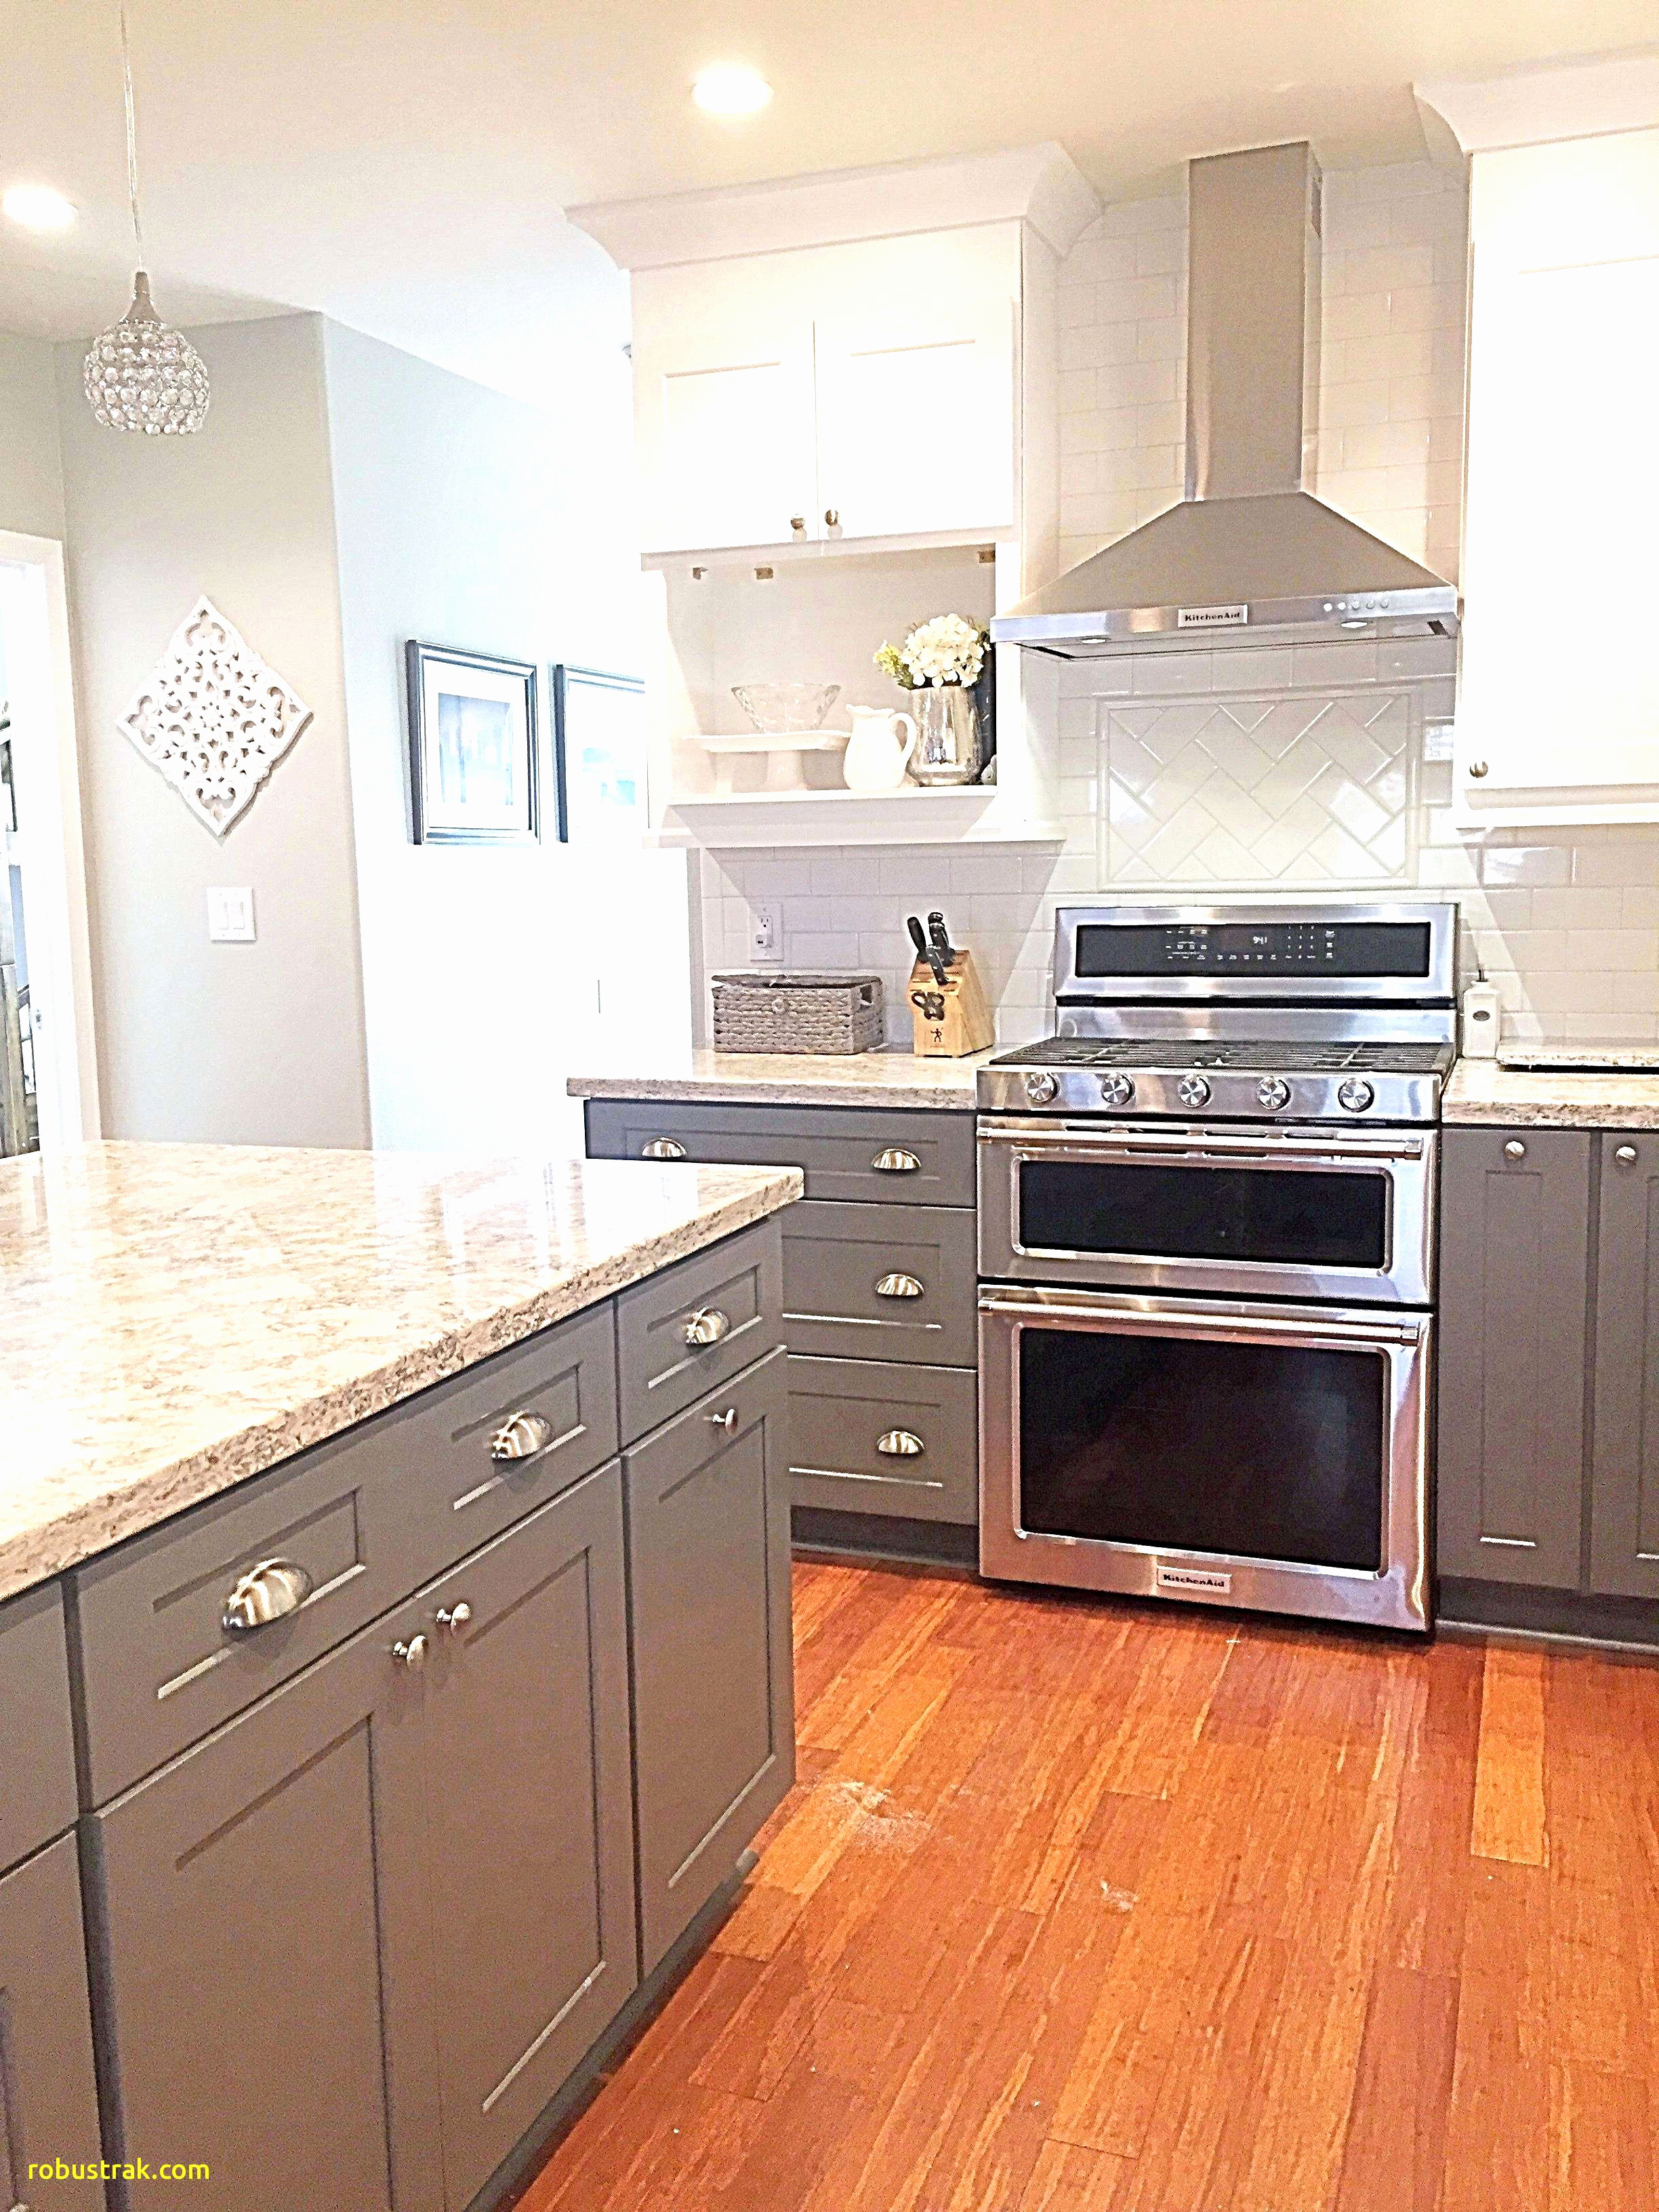 how to lay hardwood tile flooring of kitchen flooring installation floor plan ideas within kitchen colors with dark cabinets best colored kitchen cabinets lovely kitchen cabinet 0d interior unique wood 50 awesome how to install kitchen floor tile